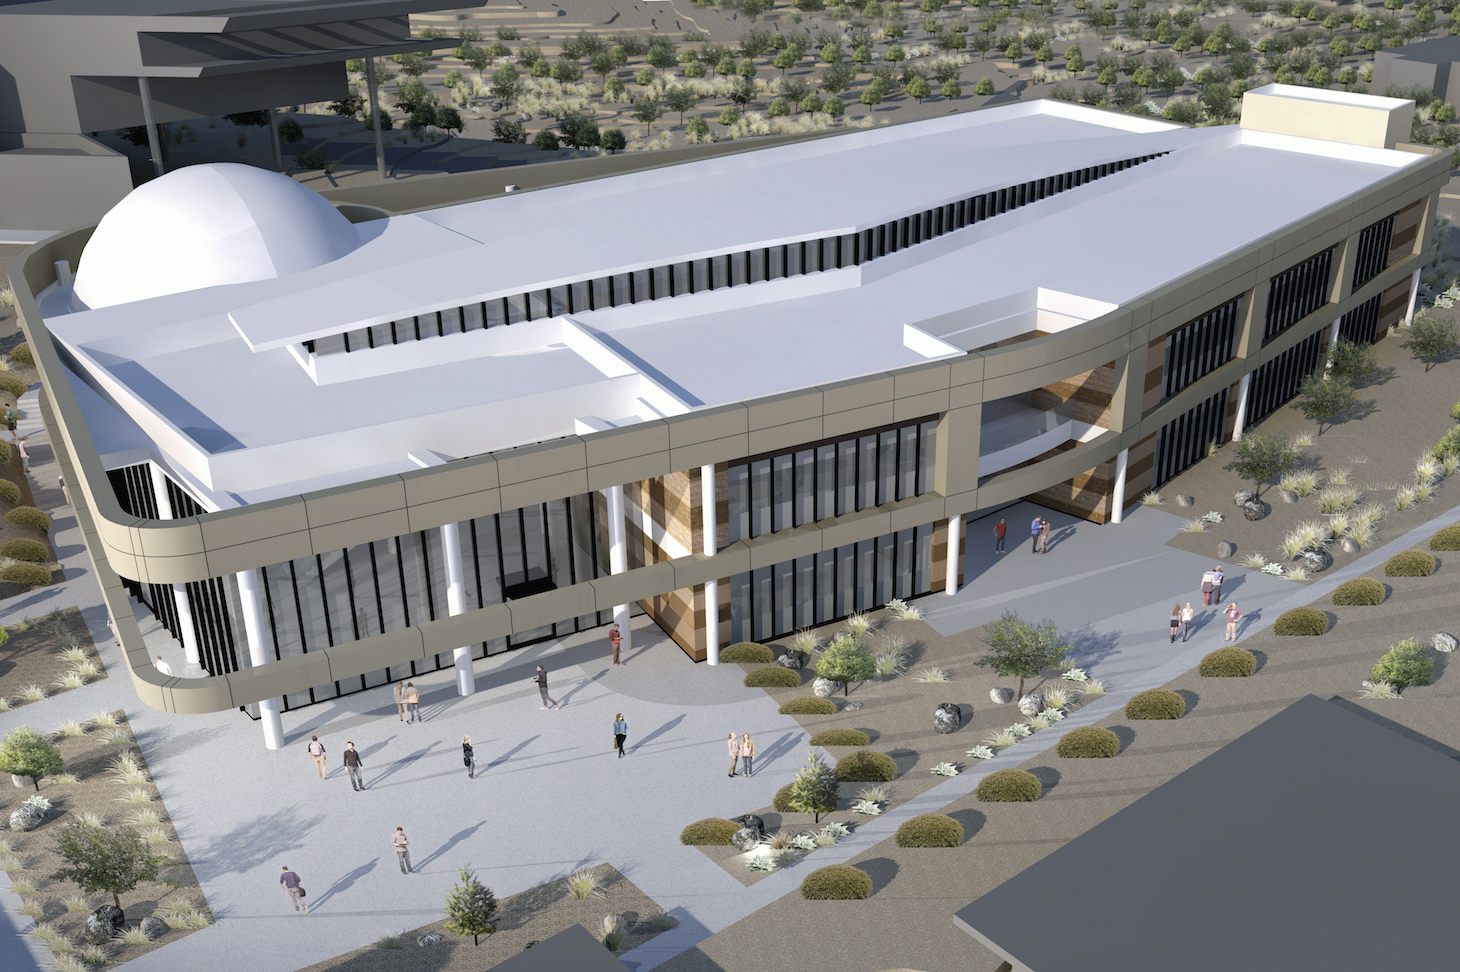 Embry-Riddle rendering copy